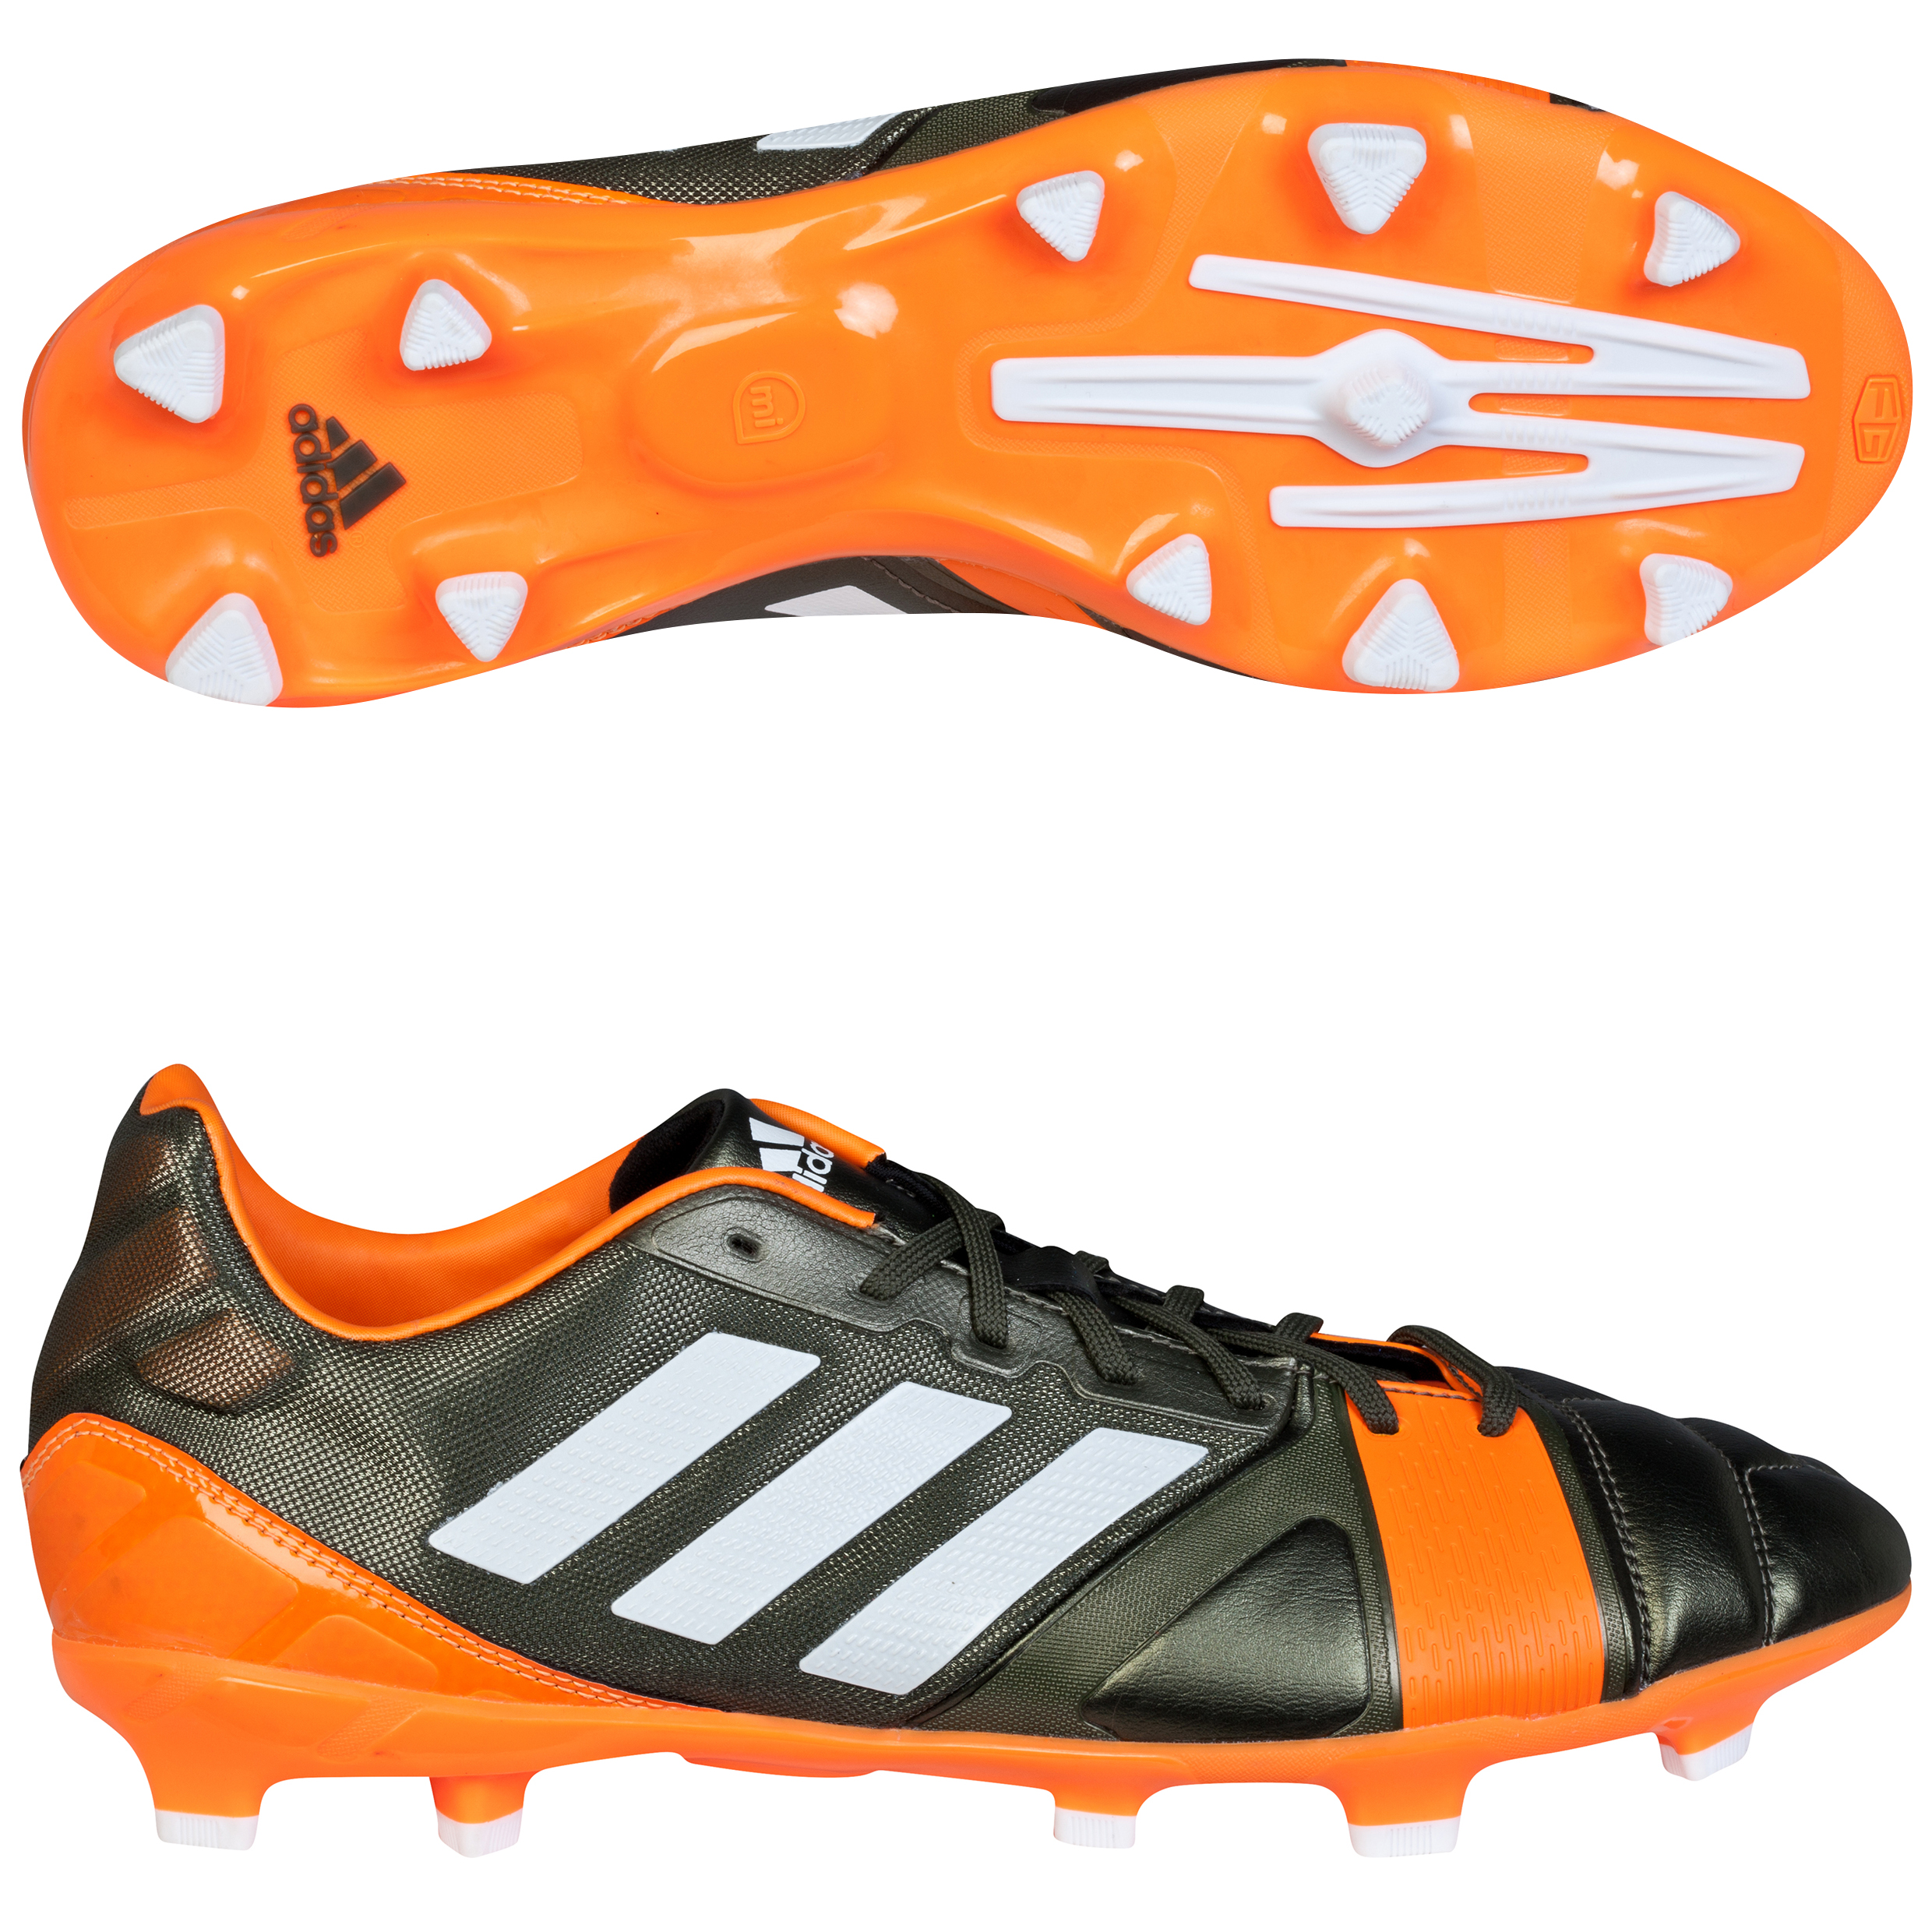 adidas Nitrocharge 2.0 TRX Firm Ground Football Boots Dk Green